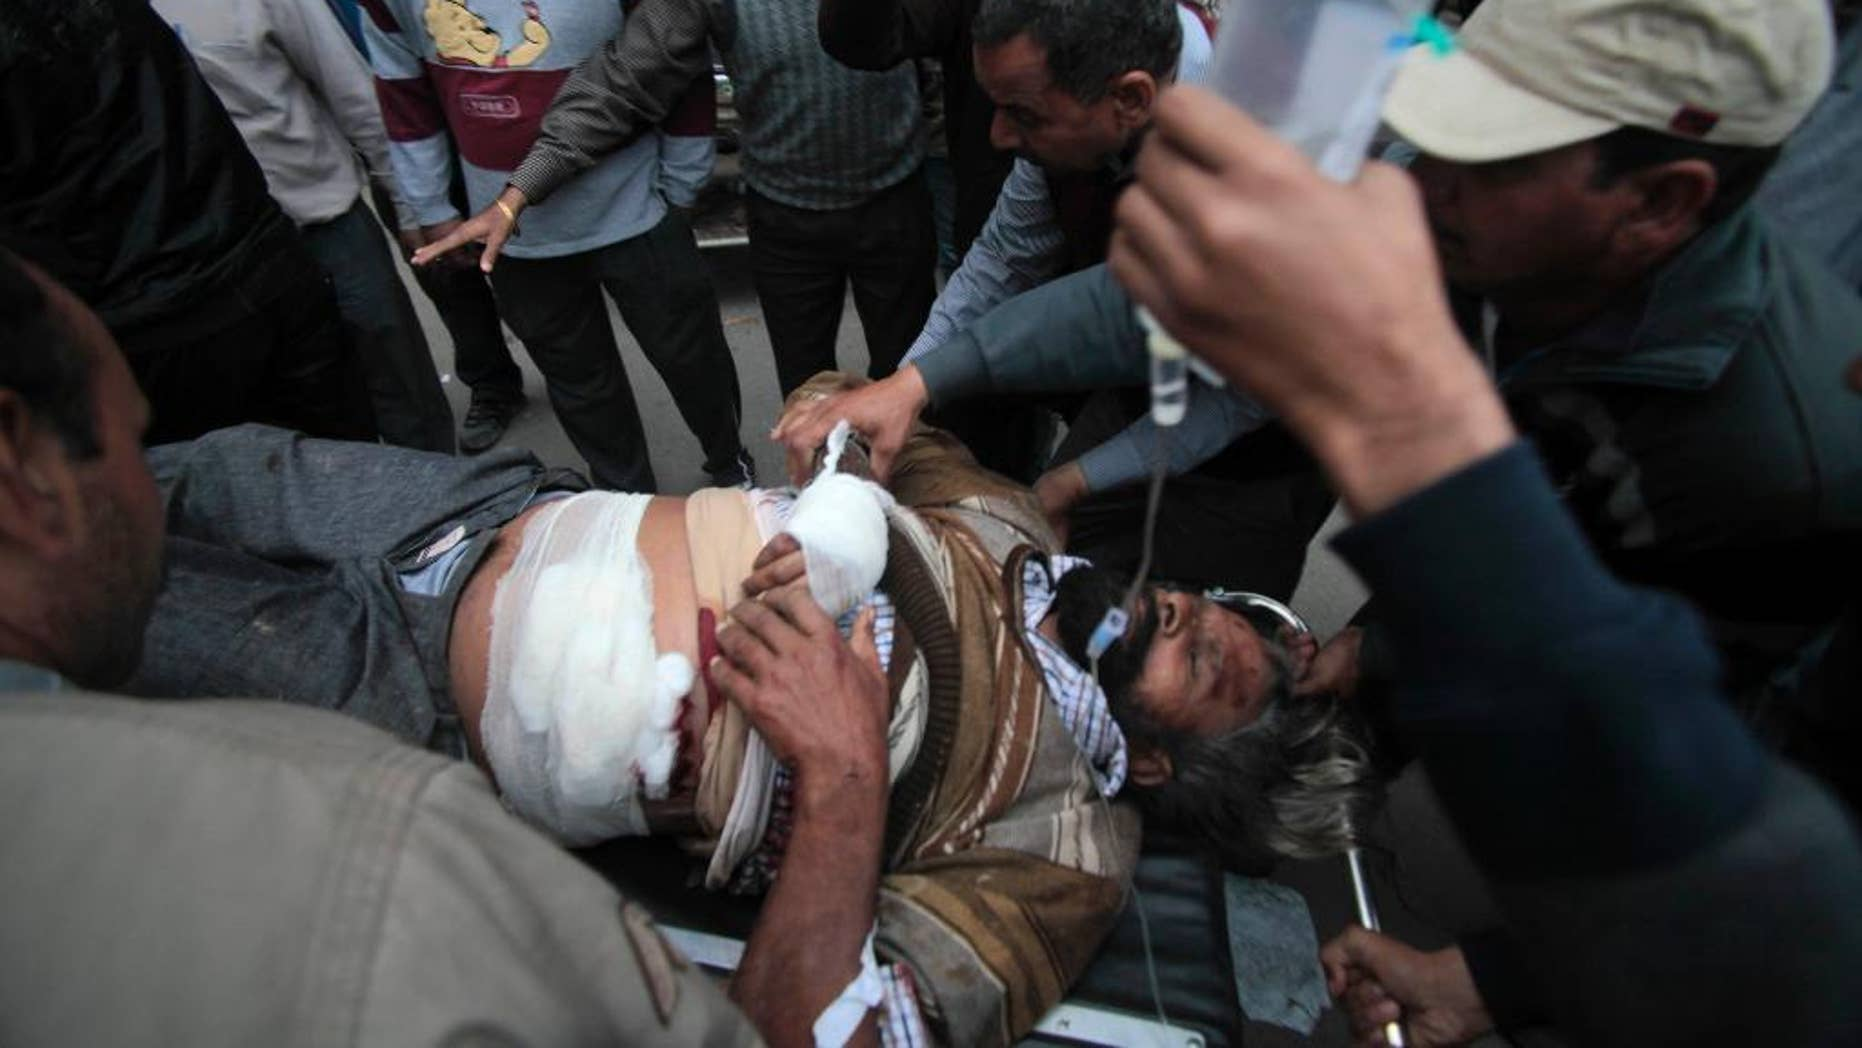 An injured man is carried on a stretcher for treatment to the Government Medical College after an attack in Jammu, India, Friday, March 28, 2014. One person was killed and three others injured Friday when unidentified gunmen wearing army uniform stopped a vehicle on the Jammu-Pathankot National Highway and shot its occupants, police said. The gunmen later escaped in the same vehicle. (AP Photo/Channi Anand)